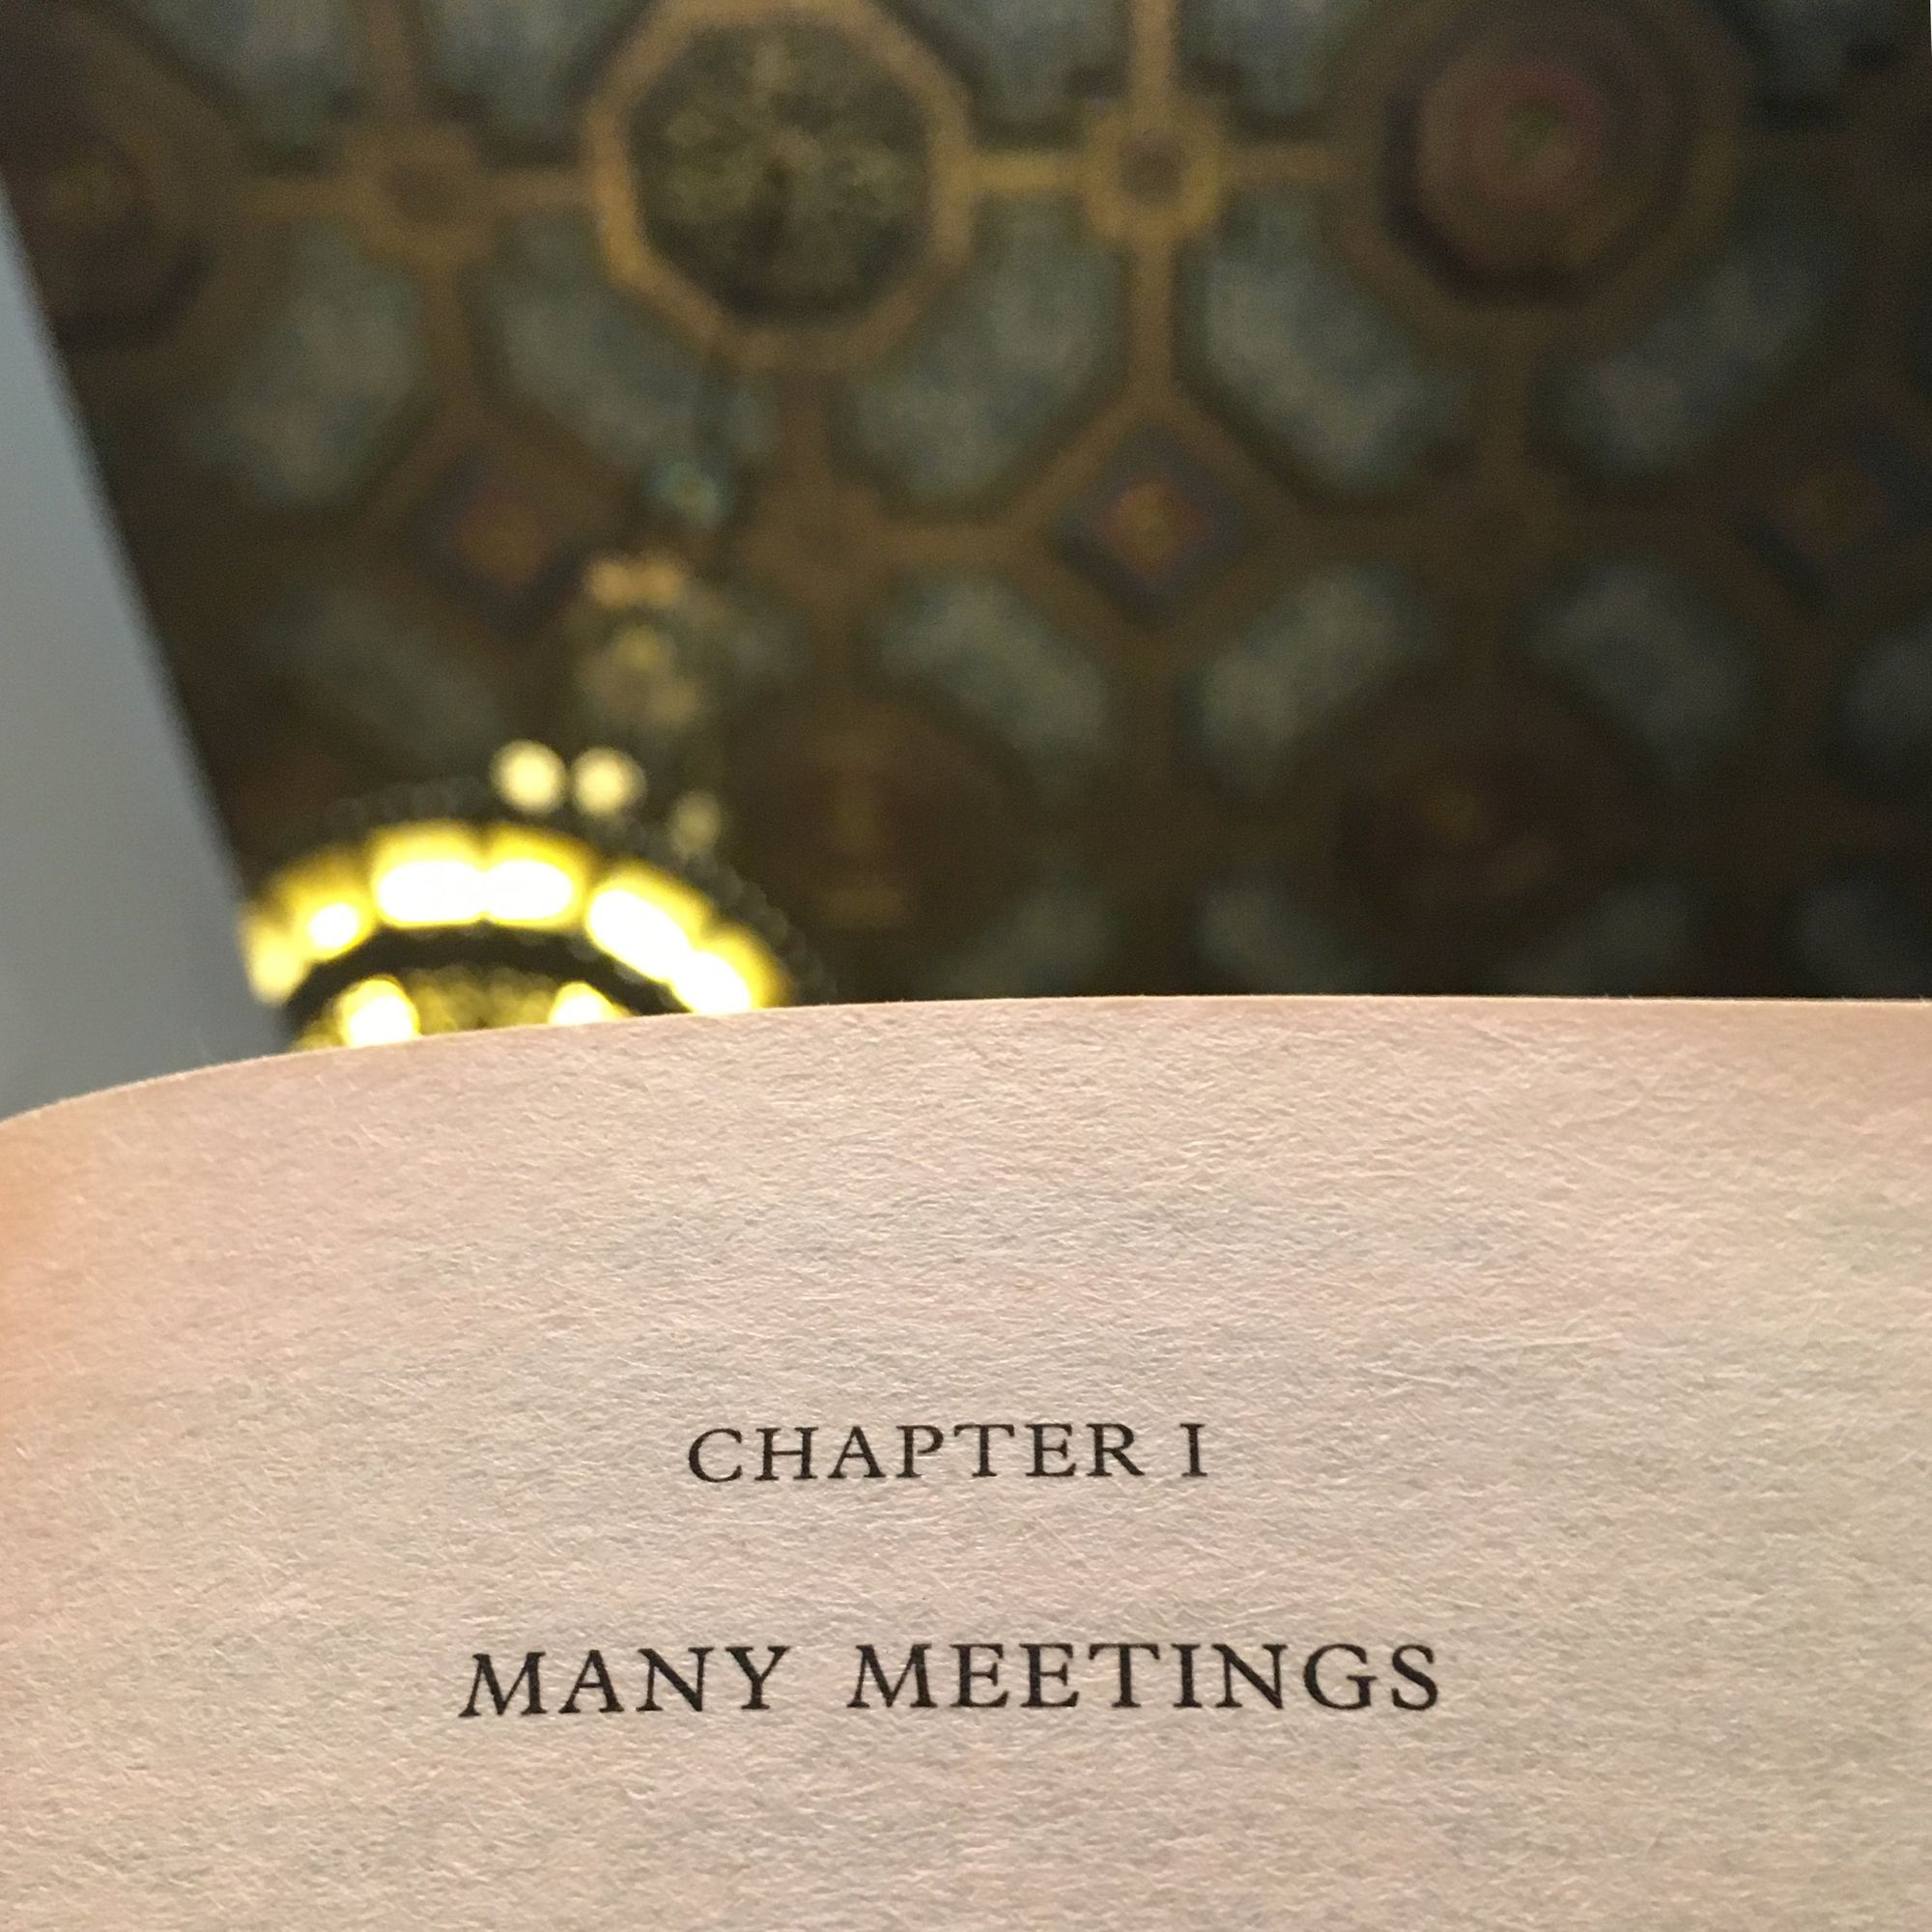 The Fellowship of the Ring: Many Meetings